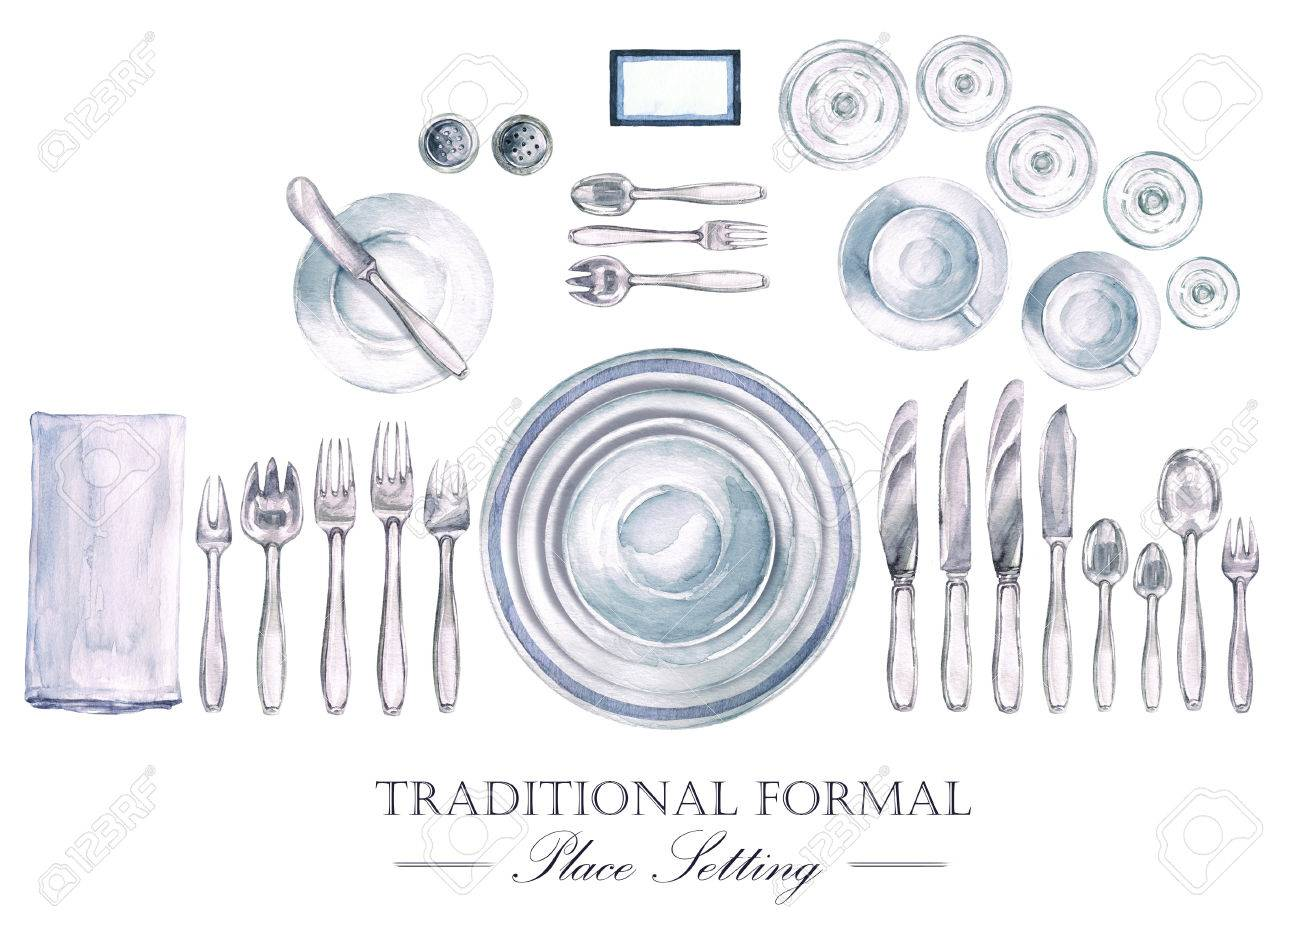 Traditional Formal Place Setting. Watercolor Illustration Stock ...